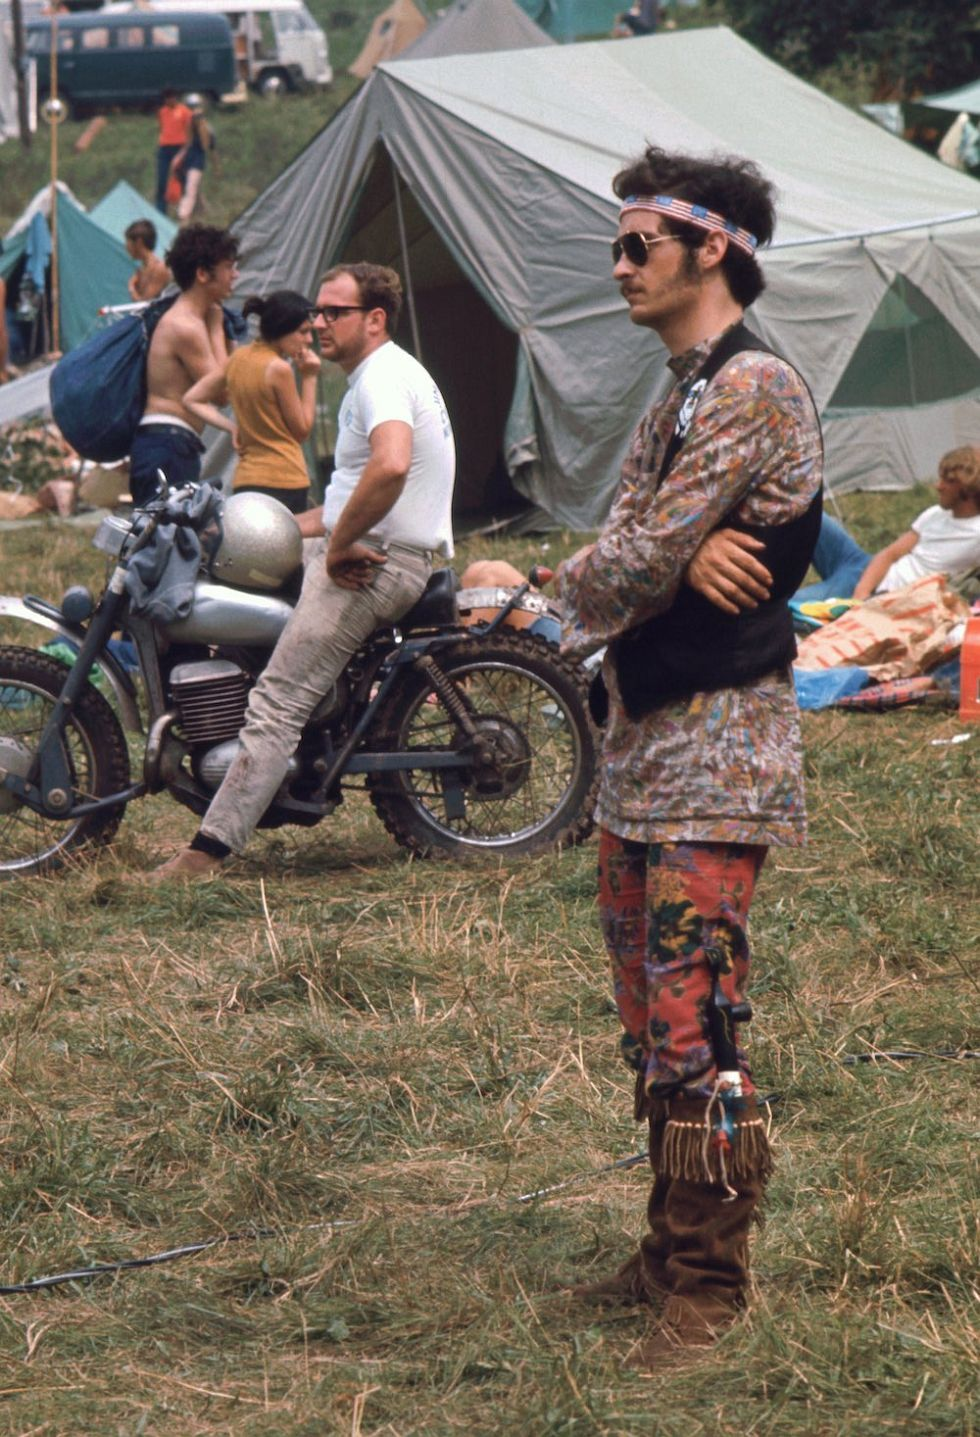 View of an unidentified festival goer as he stands, arms crossed, and watches a performace during the Woodstock Music and Arts Fair, Bethel, New York, August 1969. He is dressed in mis-matched flower print shirt and leggings, a headband made of American flags, a suede vest, and fringed, suede boots, in one of which is a long pipe. Sunglasses, mutton chops, and a mustache complete his outfit. The festival ran from August 15 to 18. (Photo by Ralph Ackerman/Getty Images)